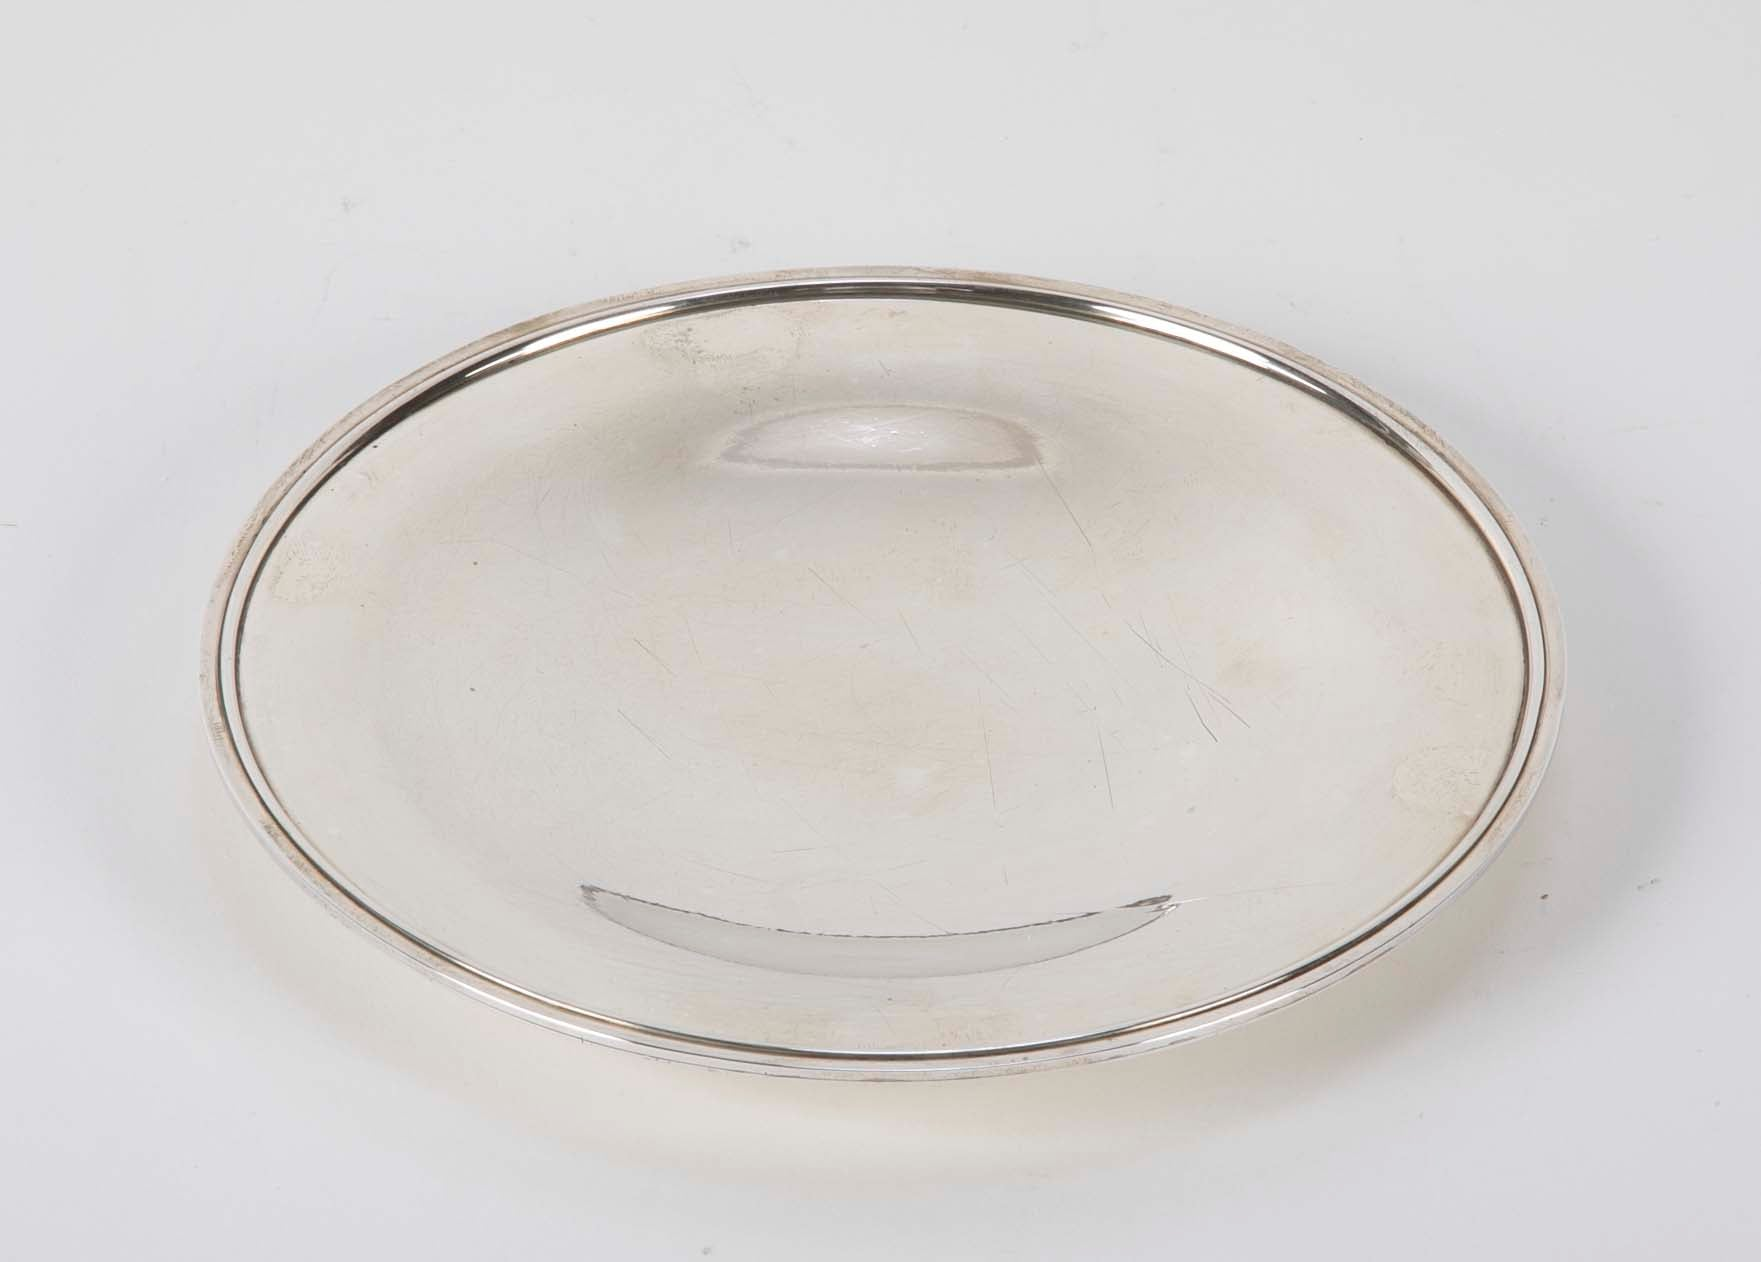 A Japanese Showa Sterling Silver Plate by Kuyeda